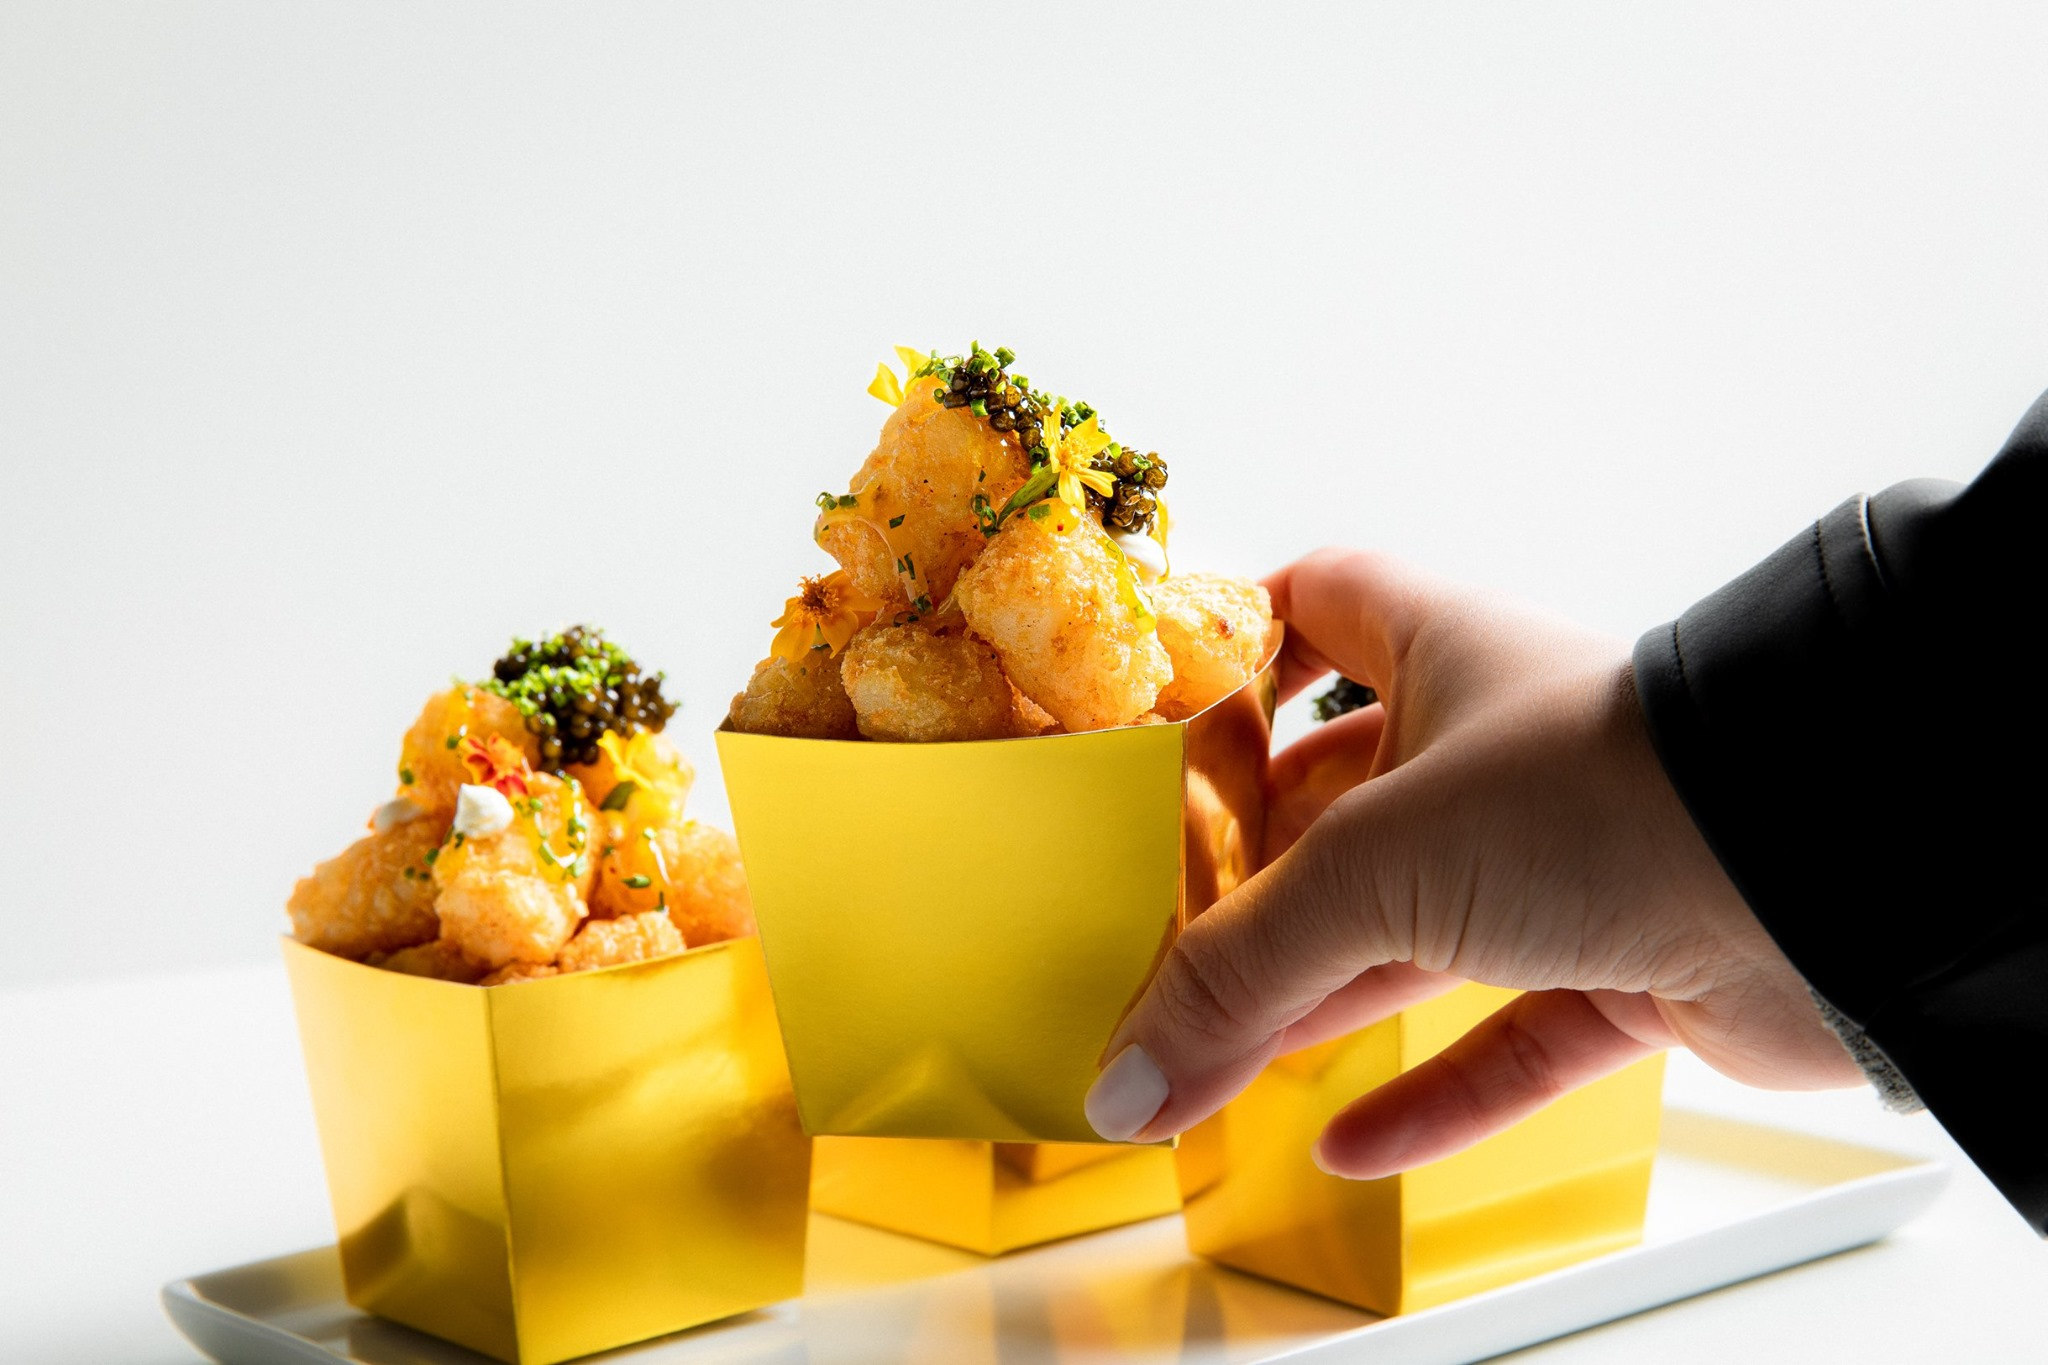 Wolfgang Puck's Governors Ball is the Gold Standard in Oscar Night Parties